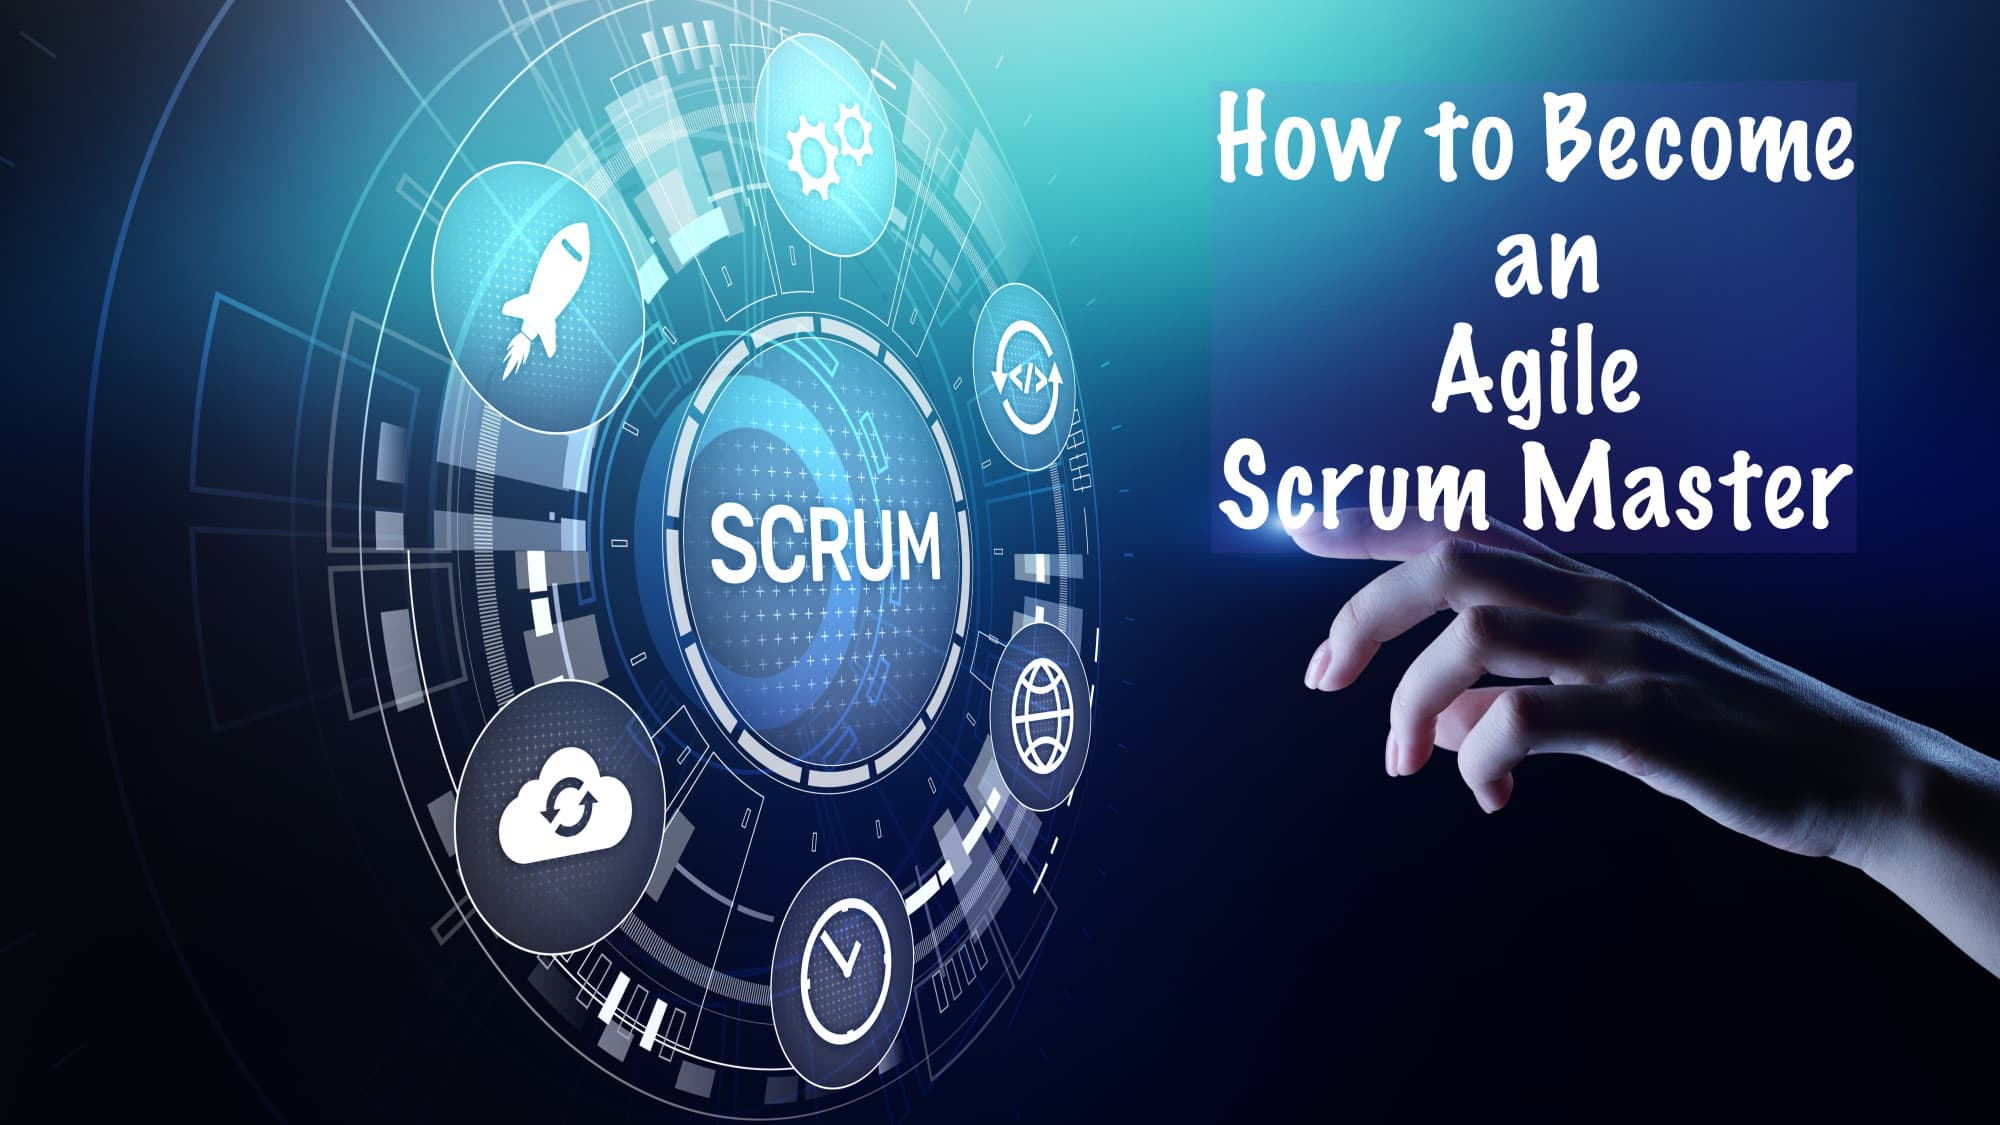 Everything You Need to Know About Becoming a Scrum Master